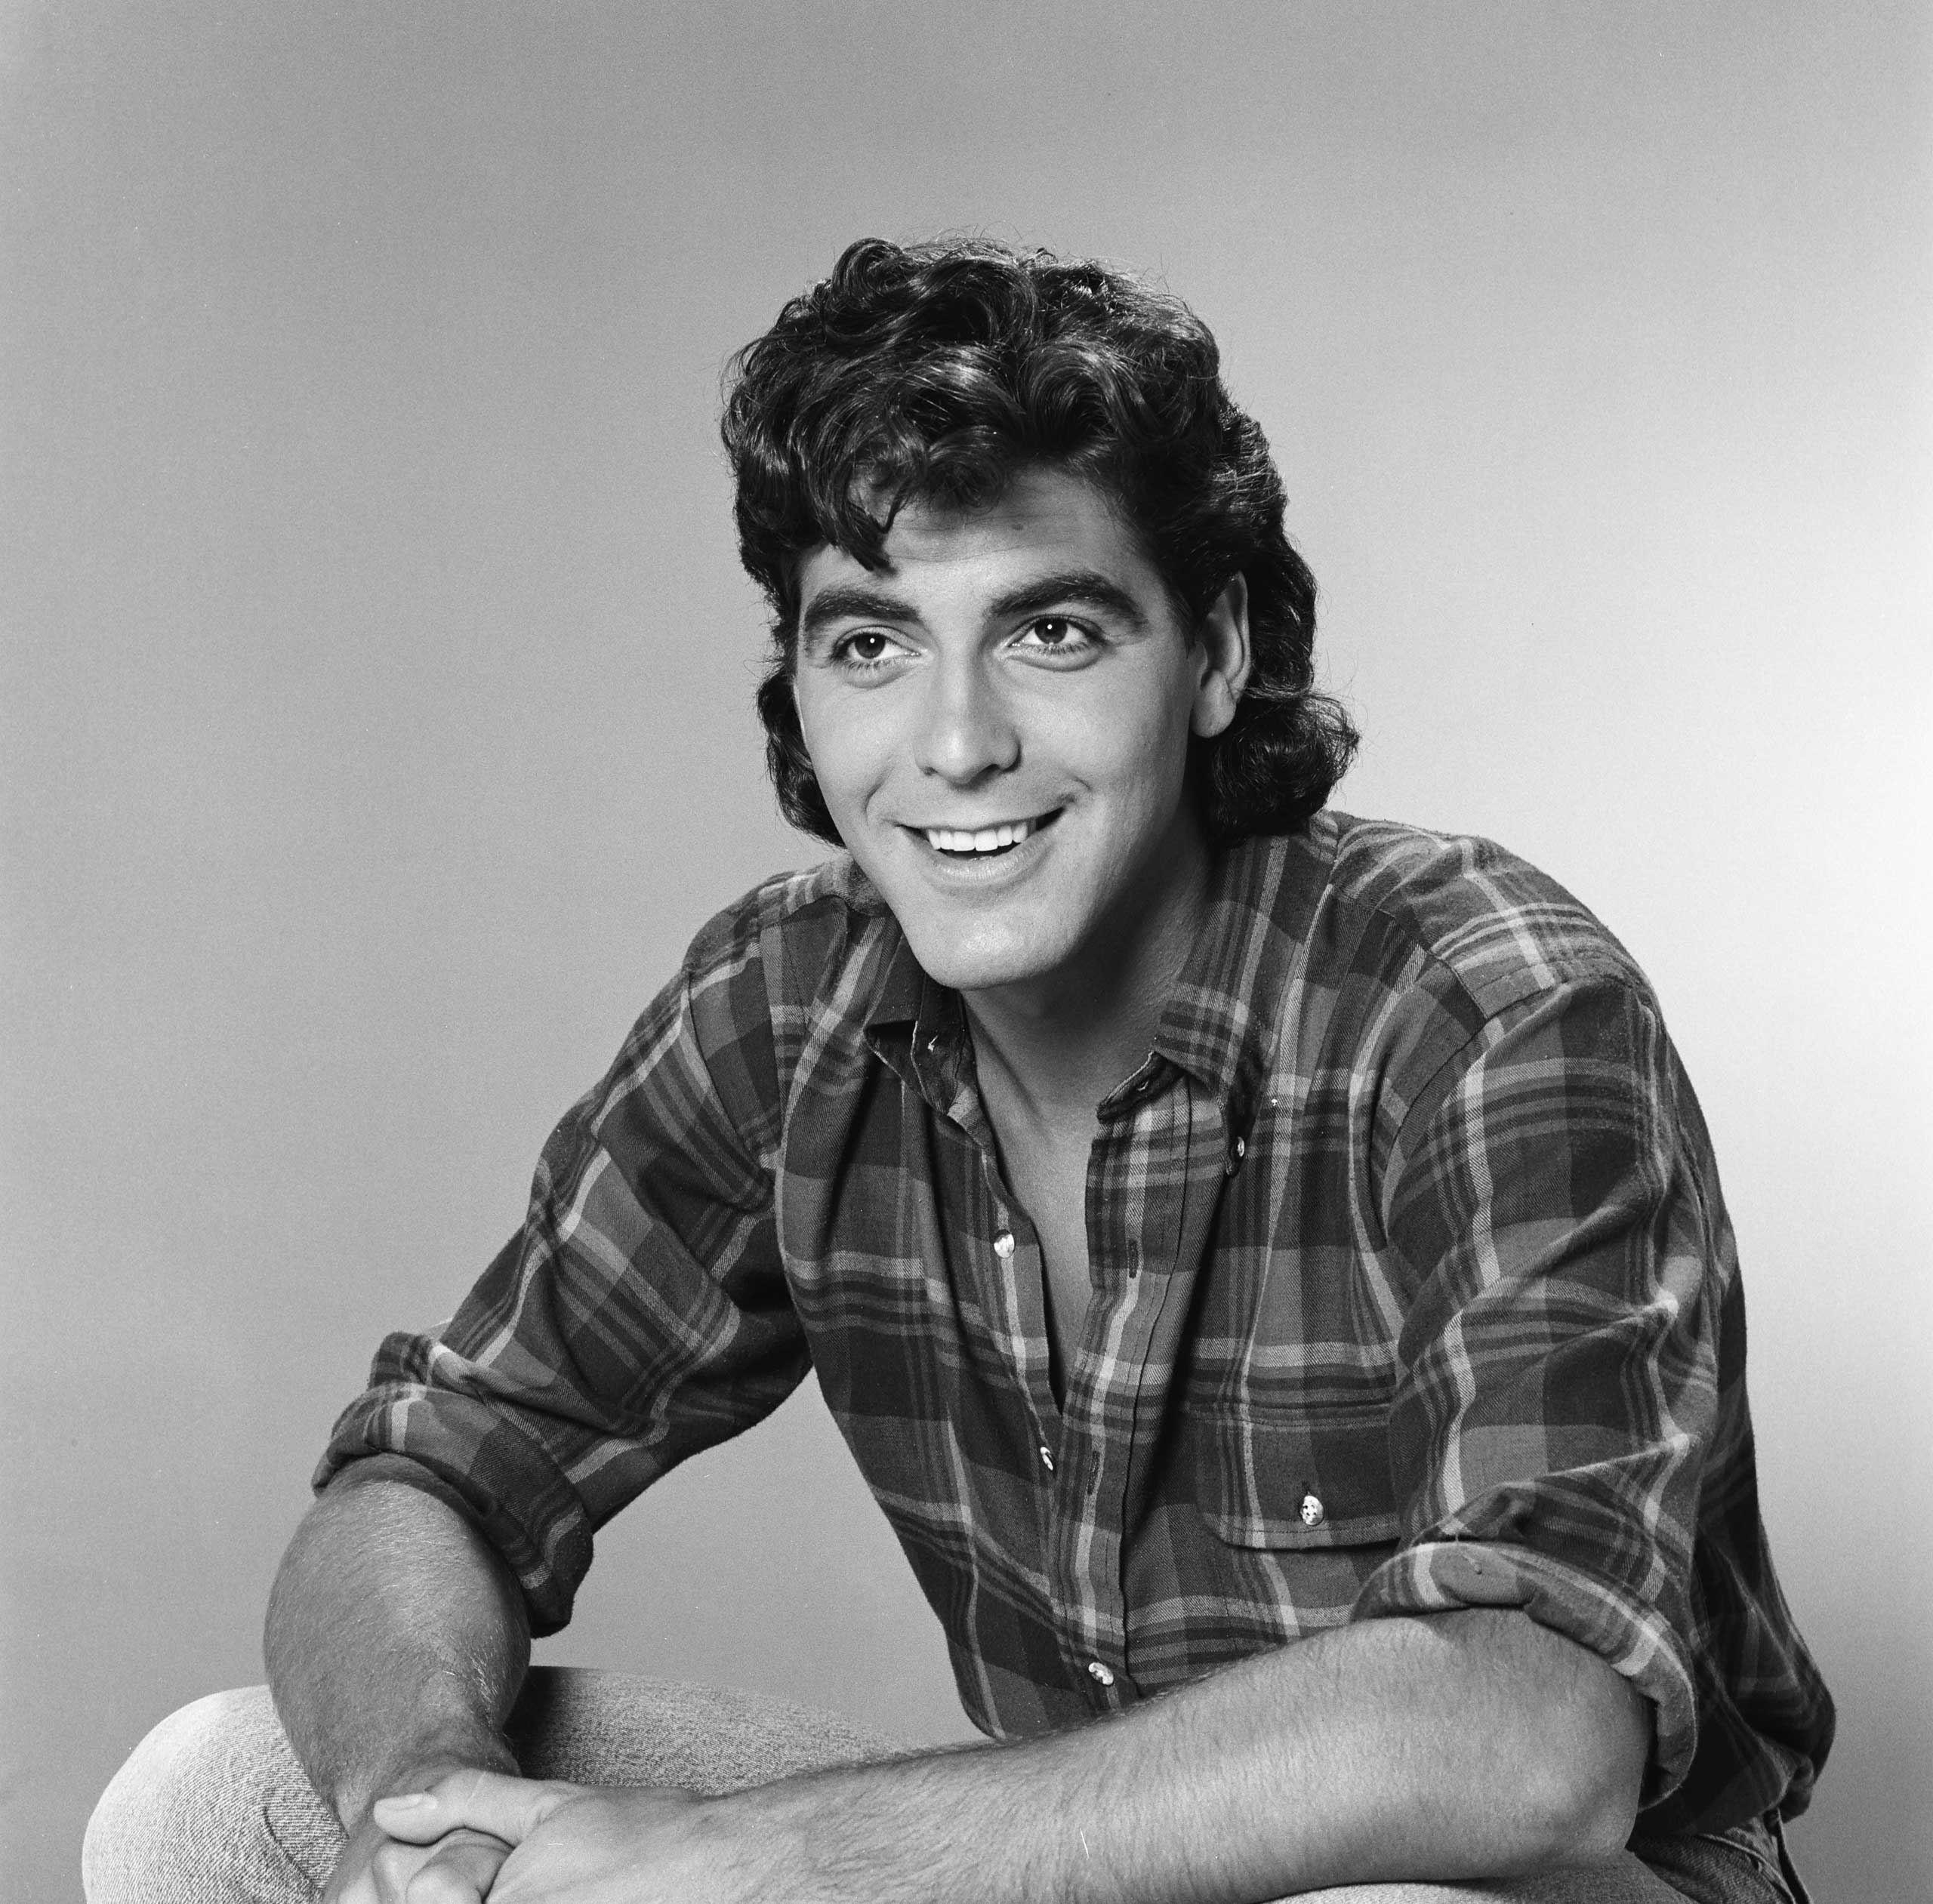 """Clooney played George Burnett on """"The Facts of Life""""  from 1985-1987."""